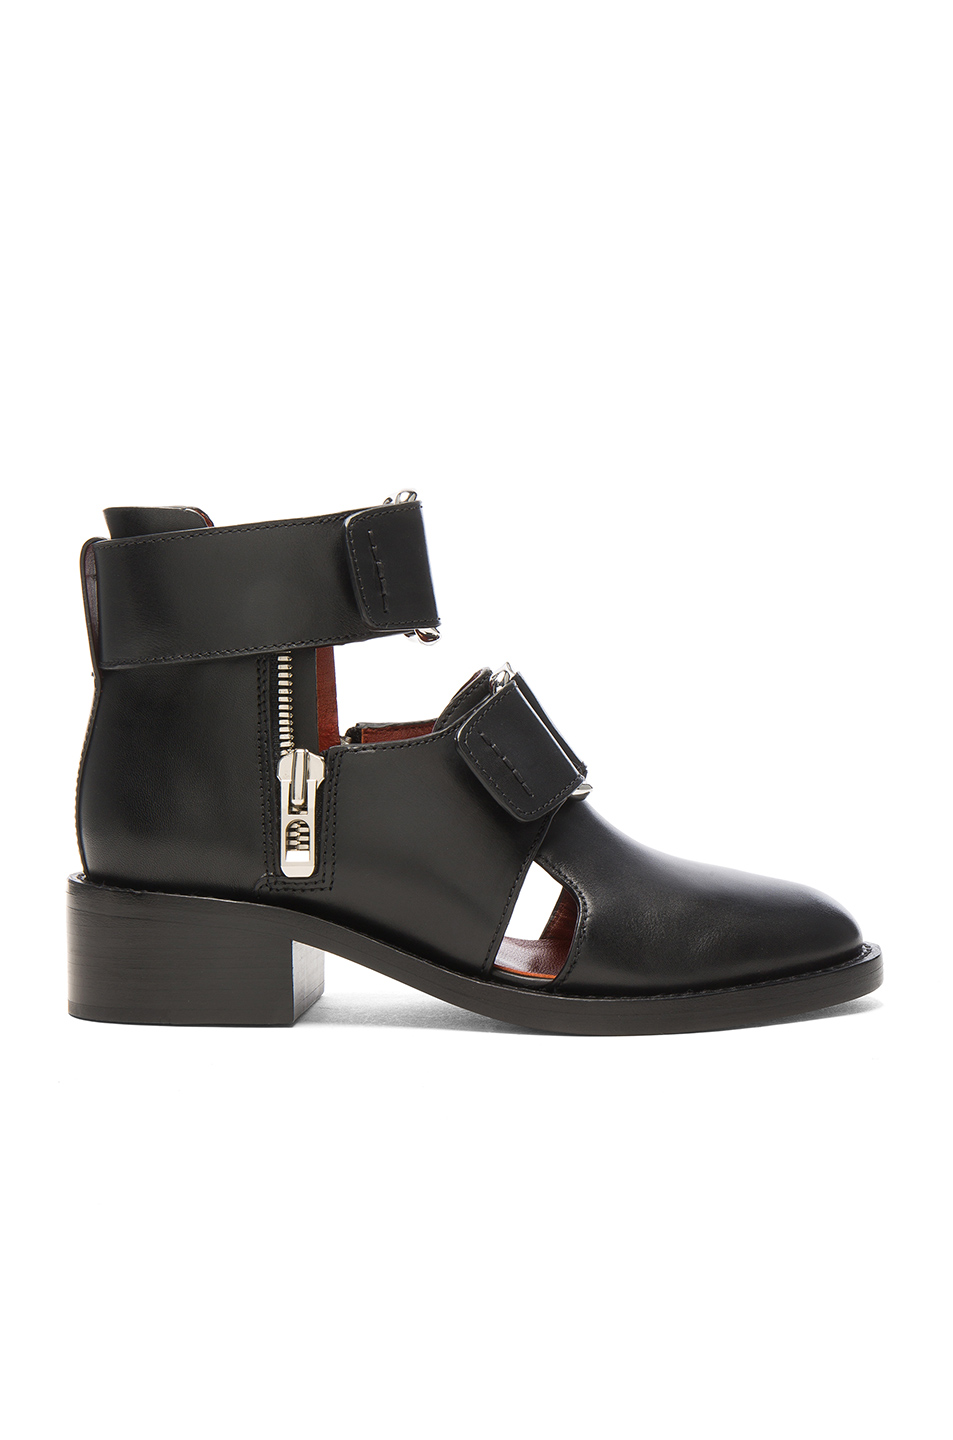 Photo of 3.1 phillip lim Leather Addis Cut Out Boots in Black shop 3.1 phillip lim shoes